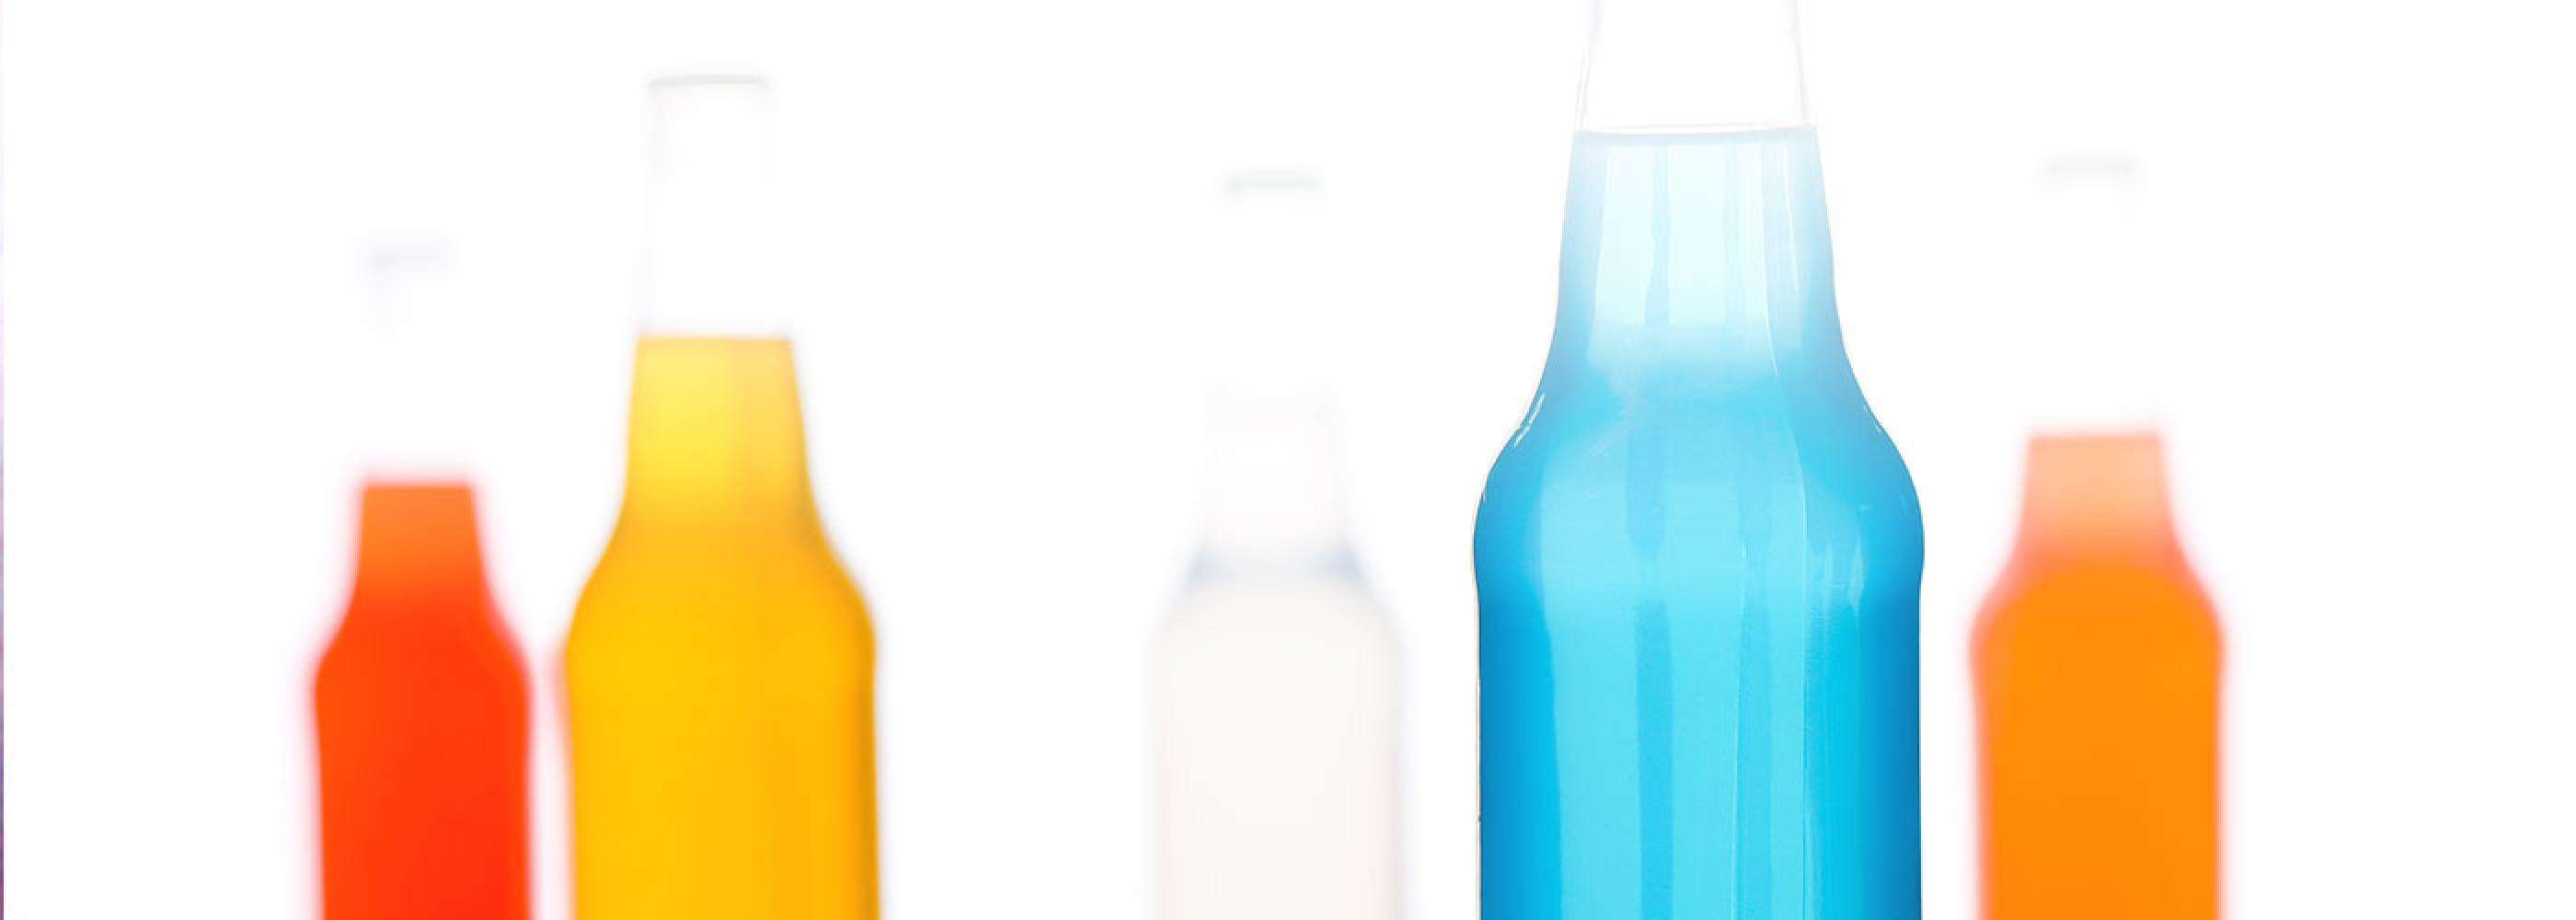 Why BevSource? Because beverages don't make themselves.